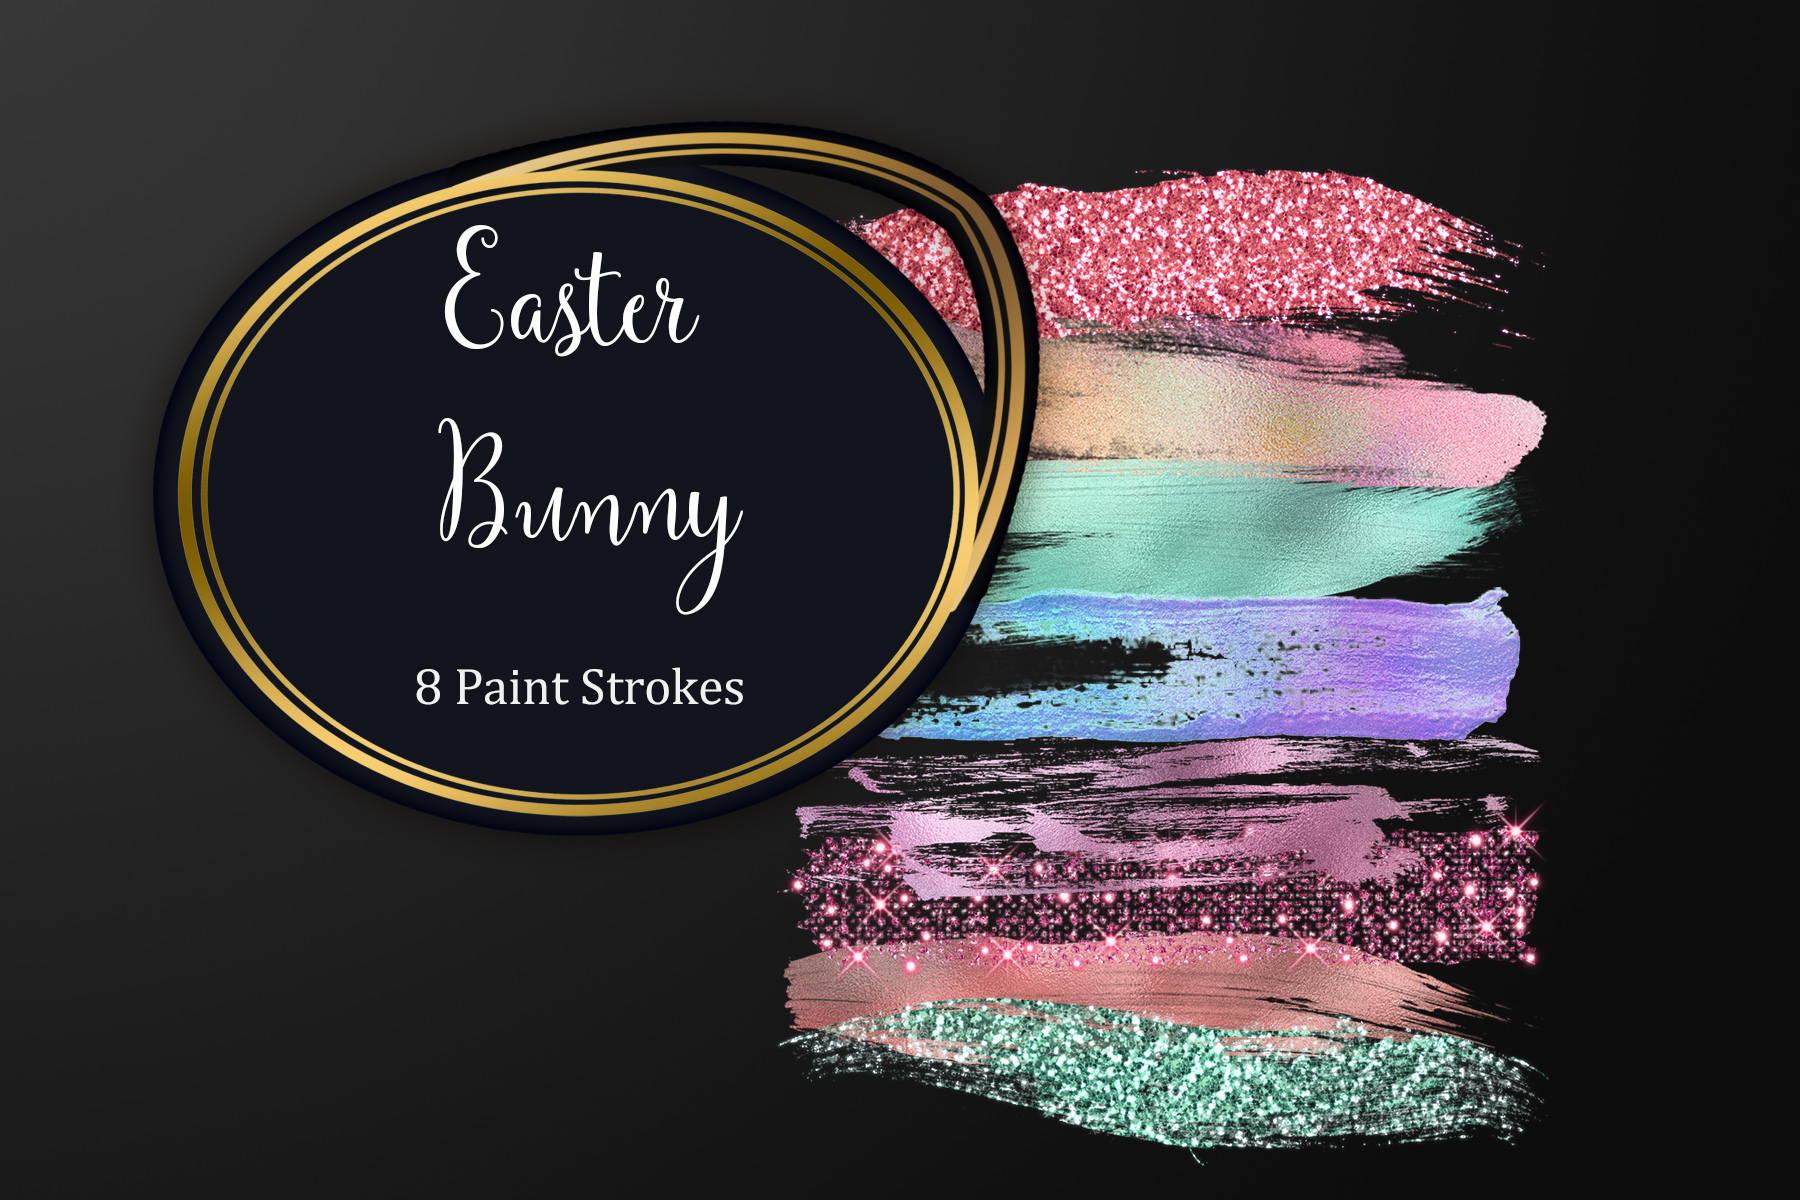 Download Free Easter Bunny Brush Strokes Graphic By Tara Artisan Creative for Cricut Explore, Silhouette and other cutting machines.